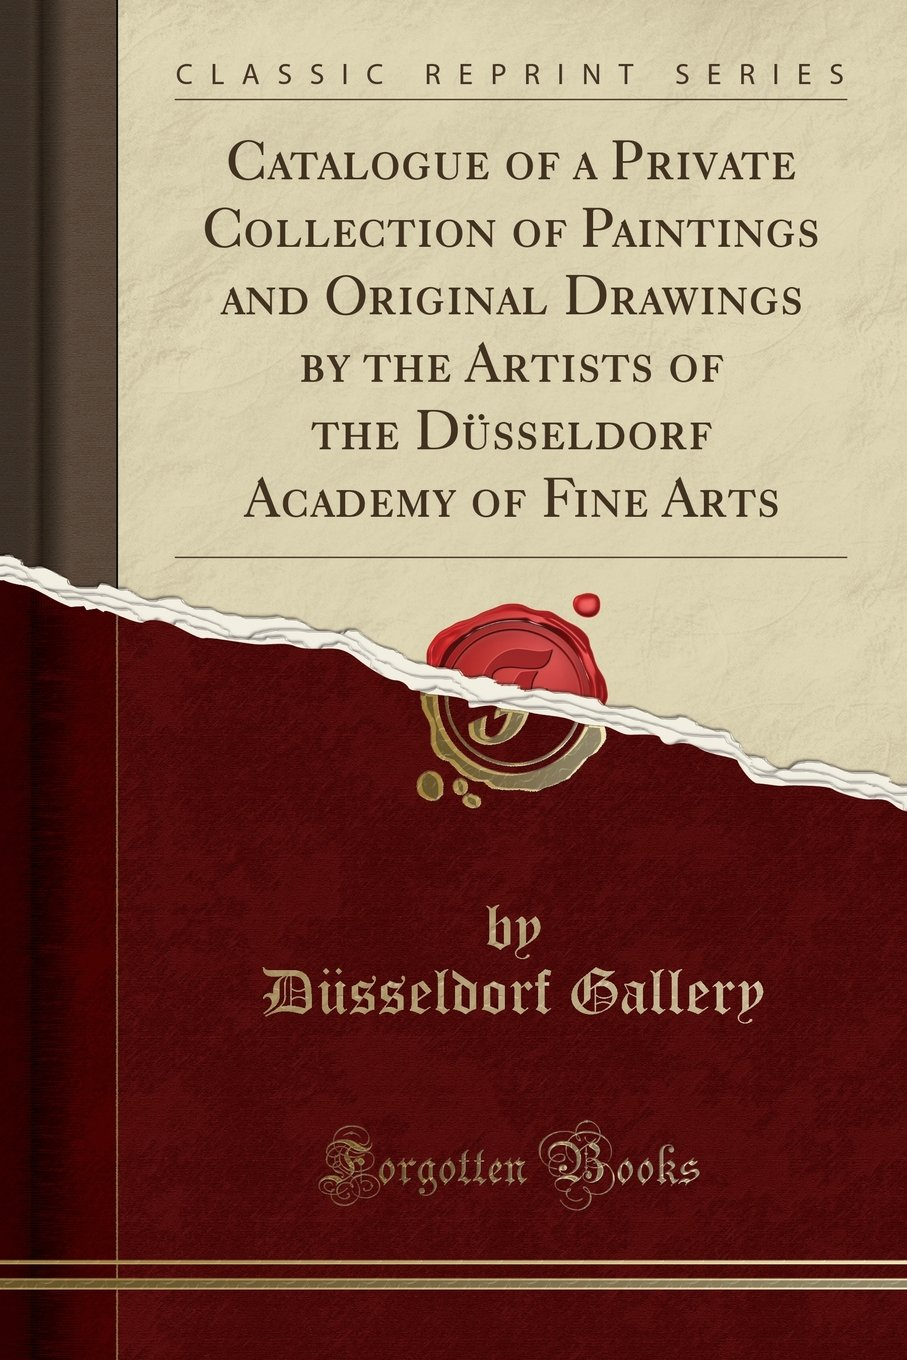 Catalogue of a Private Collection of Paintings and Original Drawings by the Artists of the Düsseldorf Academy of Fine Arts (Classic Reprint) PDF